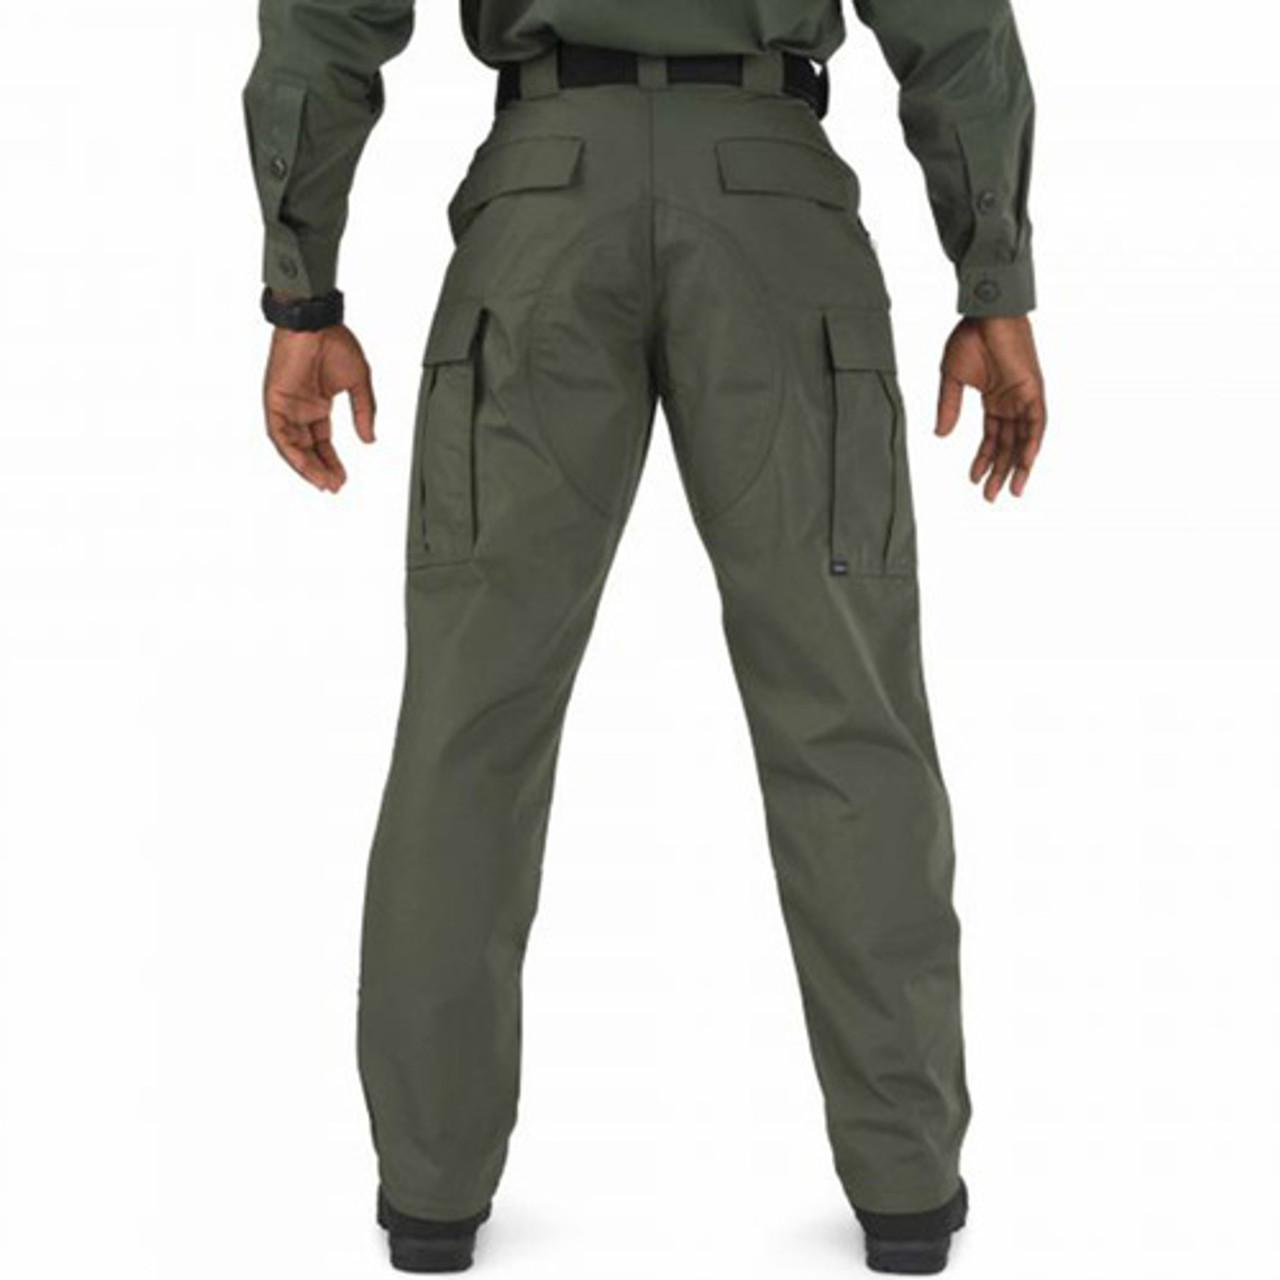 5.11 Tactical 74280 Taclite® TDU® Men's Pants, Adjustable Waistband, Classic/Straight, Uniform/Cargo, Ammo Pocket, available in Black, Storm, TDU Green, and Dark Navy